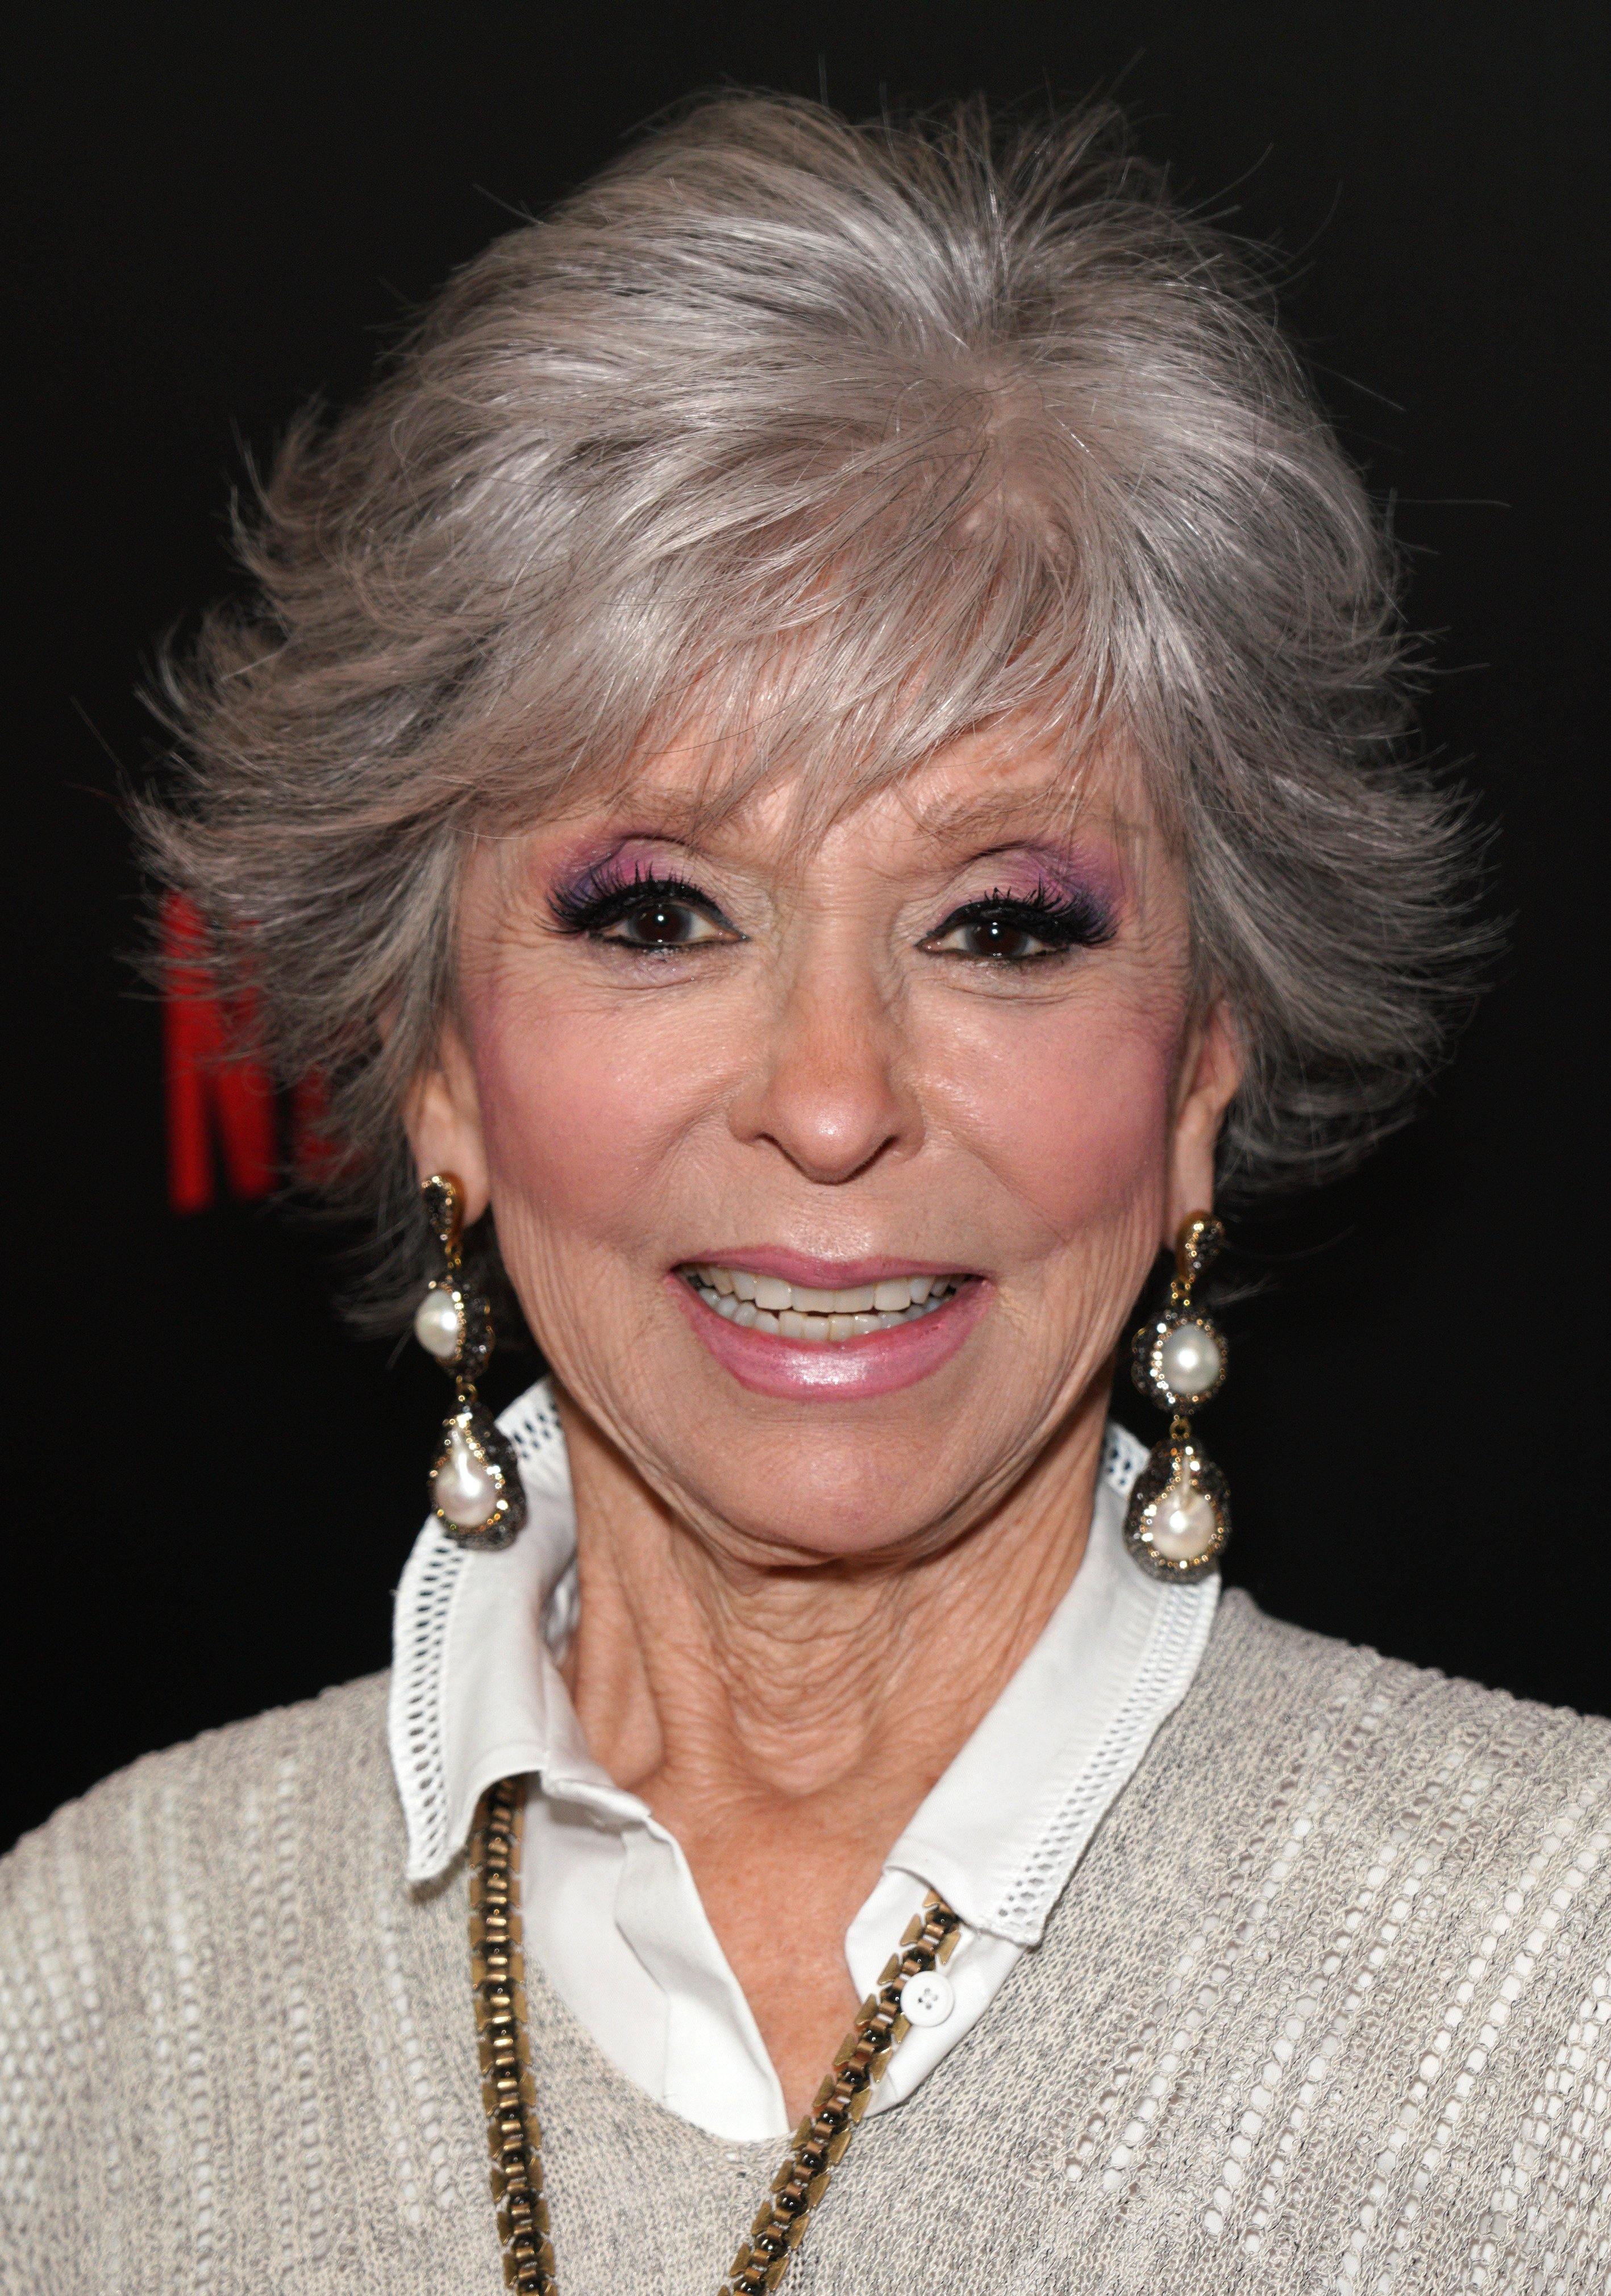 Rita Moreno attends the premiere of Netflix's 'One Day At A Time' Season 3 at Regal Cinemas L.A. LIVE Stadium 14 on February 07, 2019, in Los Angeles, California. | Source: Getty Images.